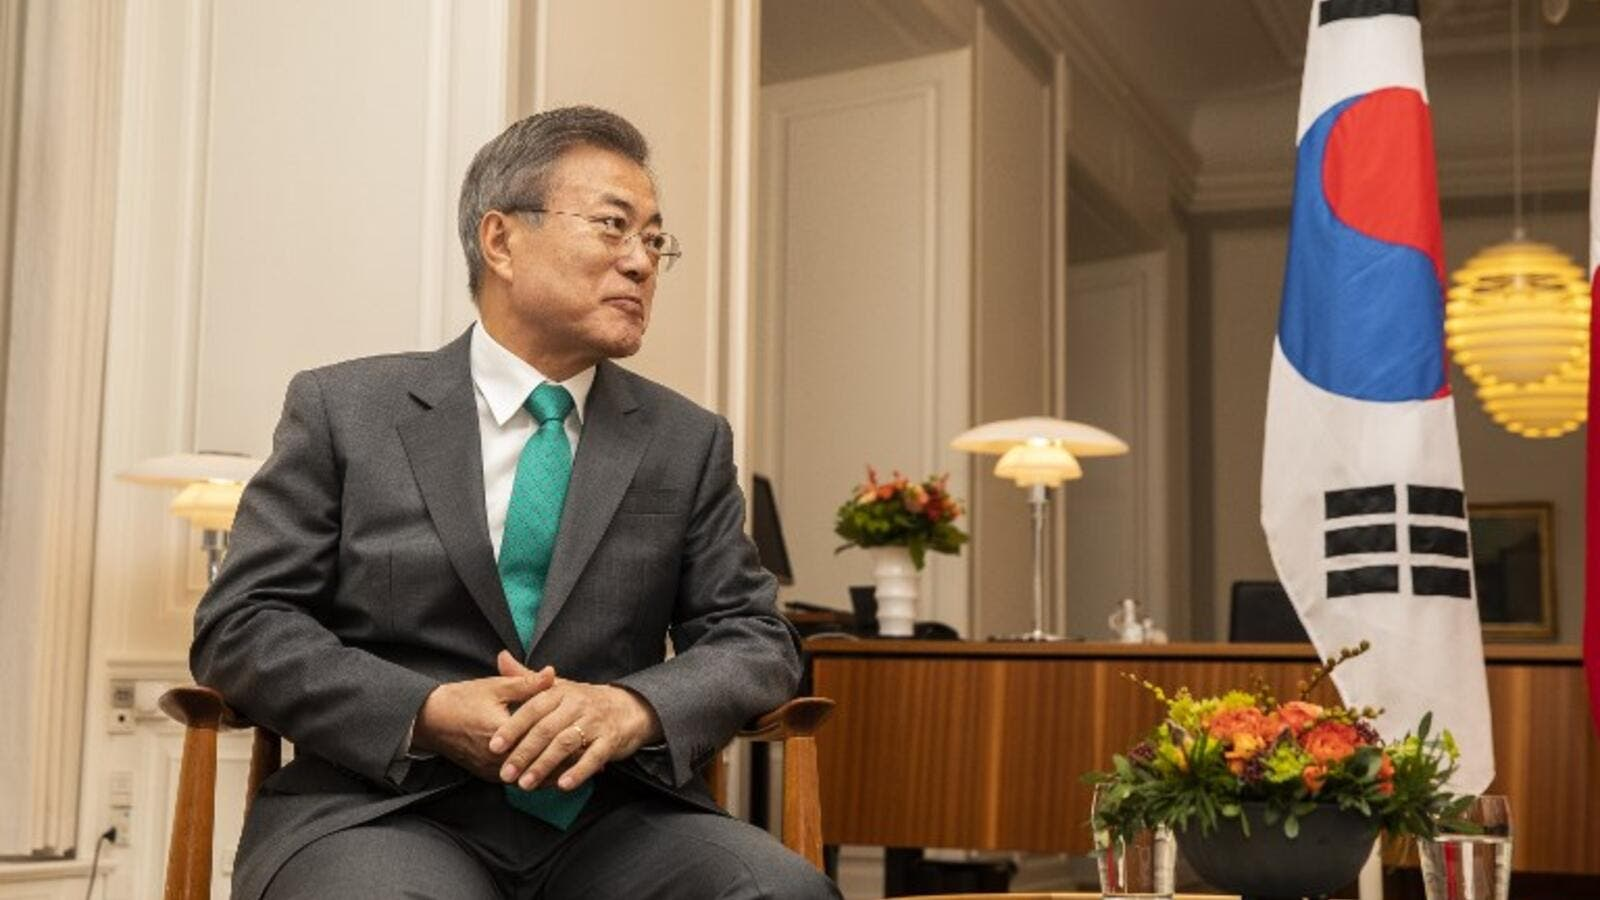 South Korean President Moon Jae-in meets with the Danish prime minister (AFP)